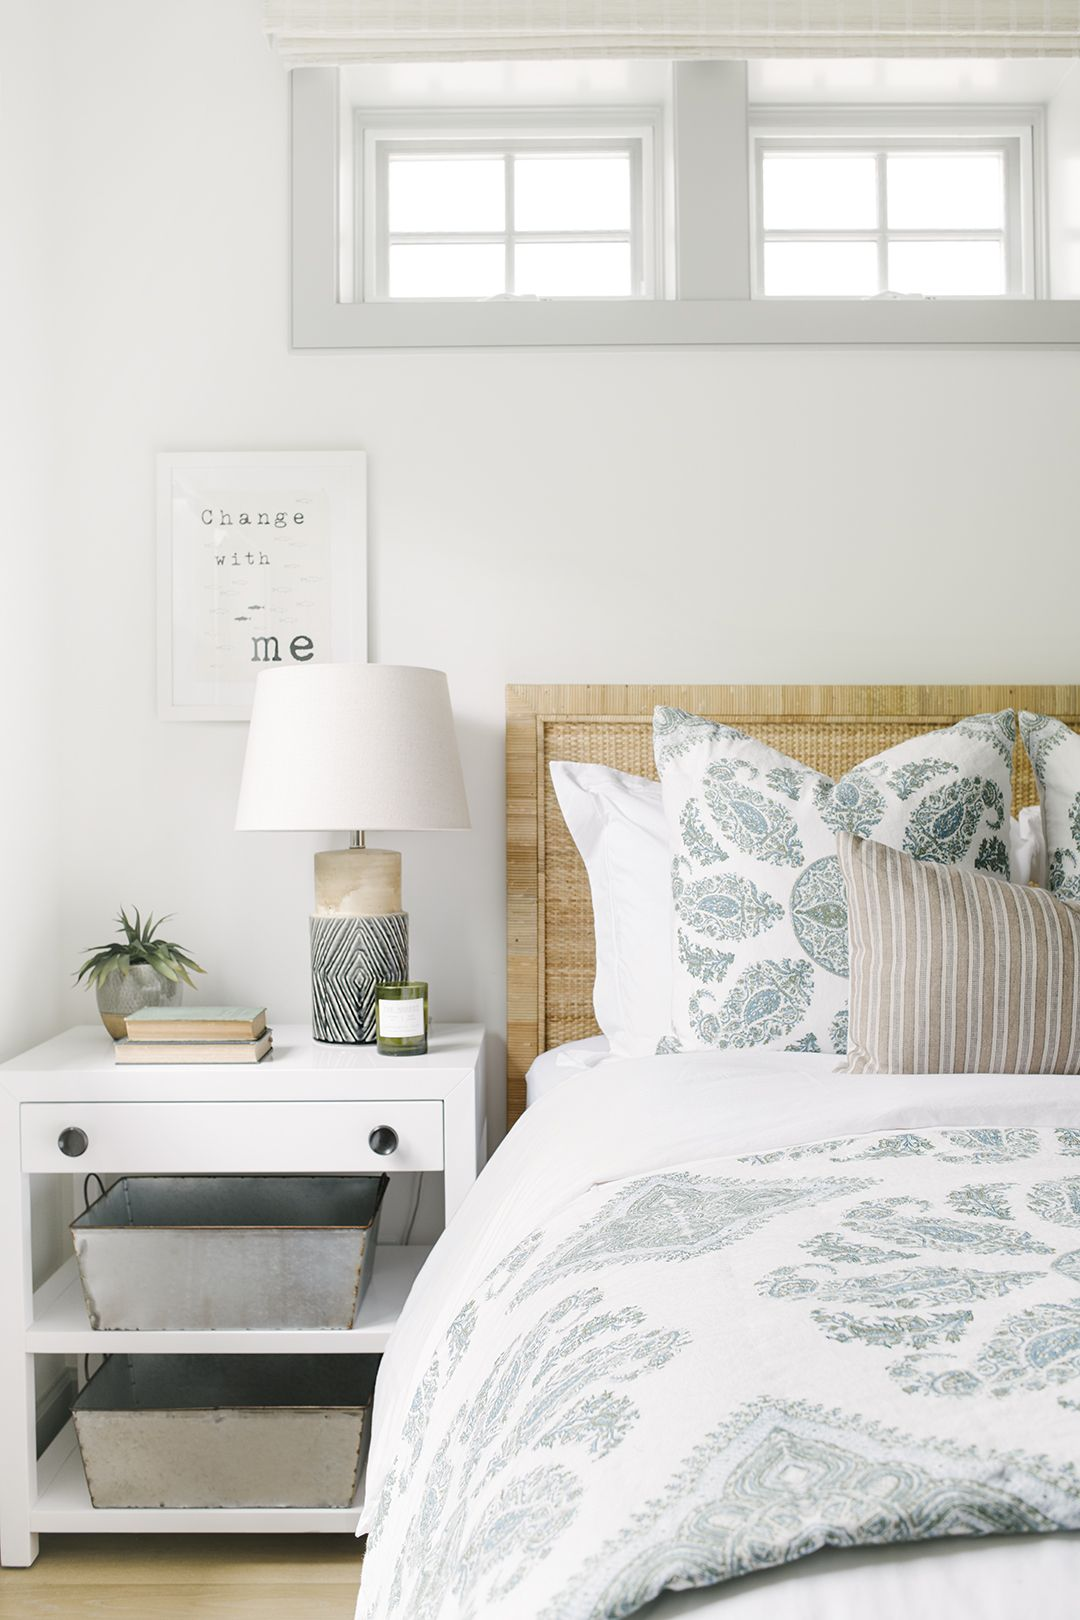 Interior Design Of Guest Room: Traditional Beach Guest Room